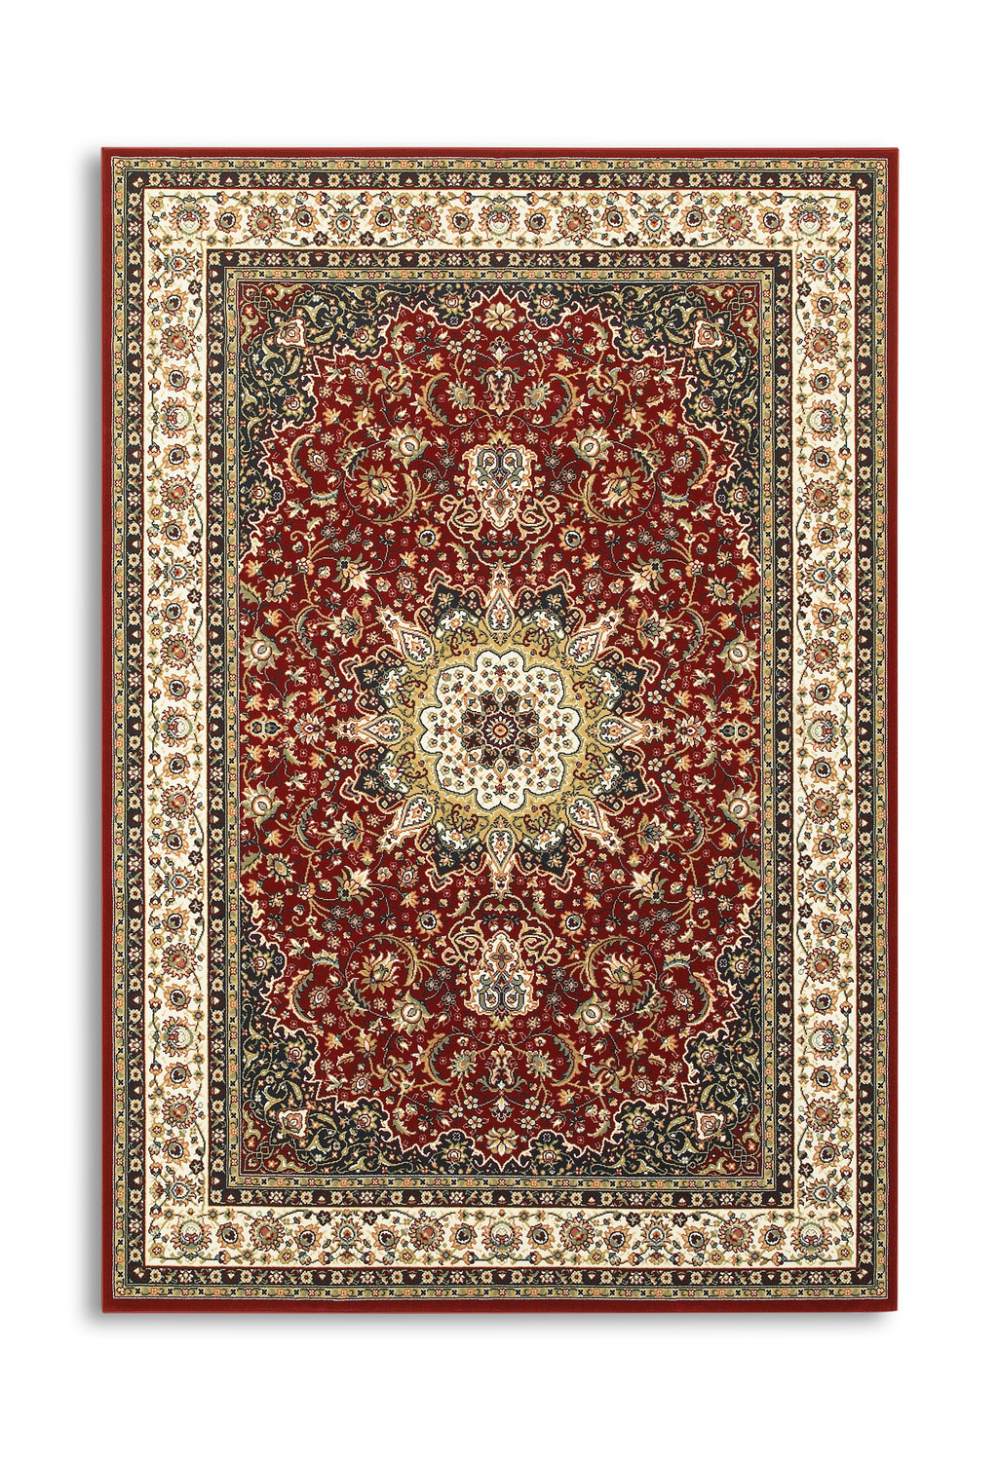 Kashan Red Alabaster Area Rug By Oriental Hom Furniture In 2020 Area Rugs Rugs Area Rug Collections